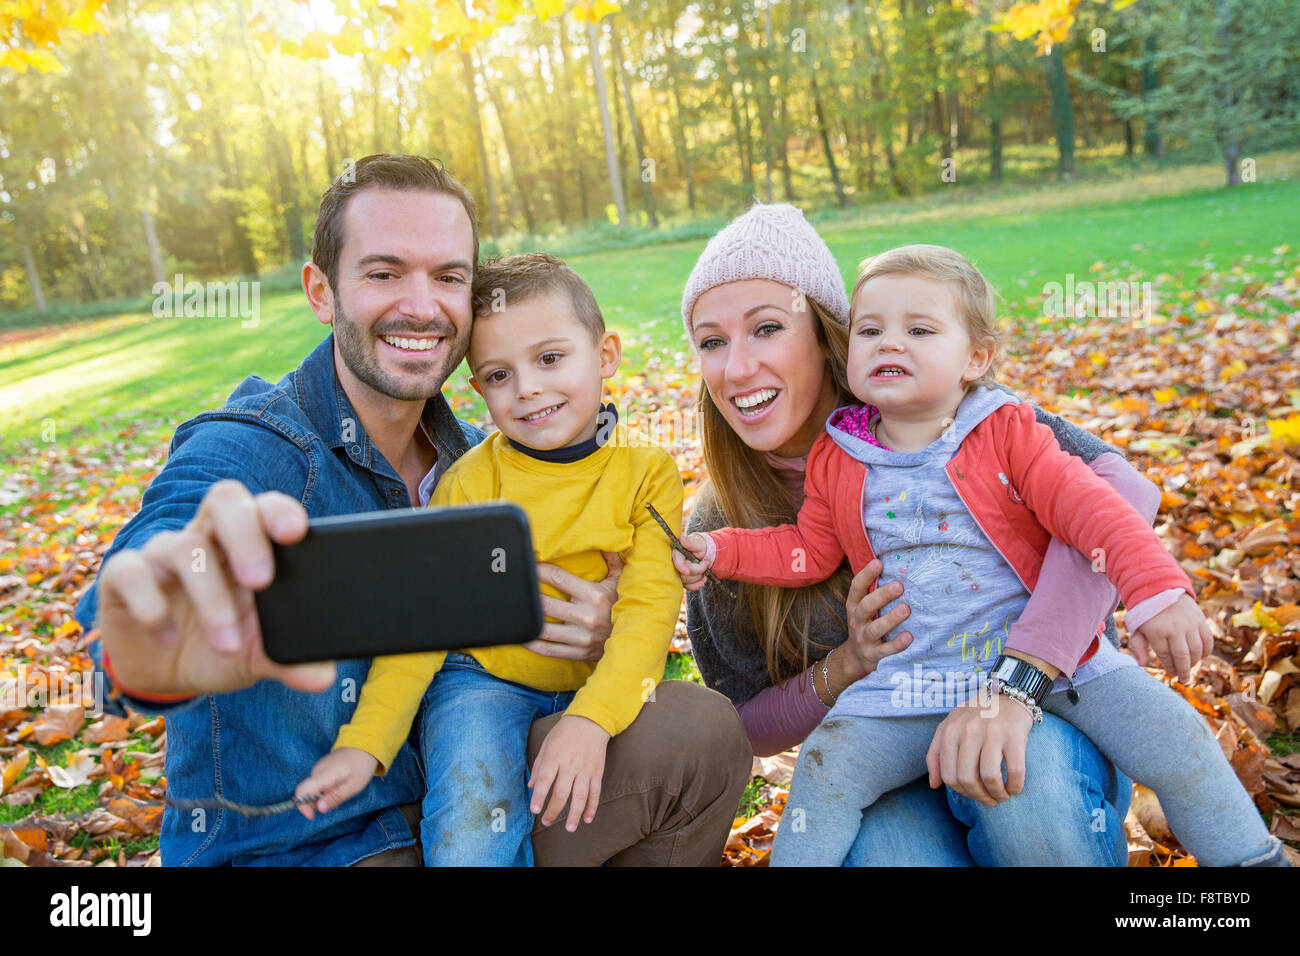 Family taking a selfie - Stock Image